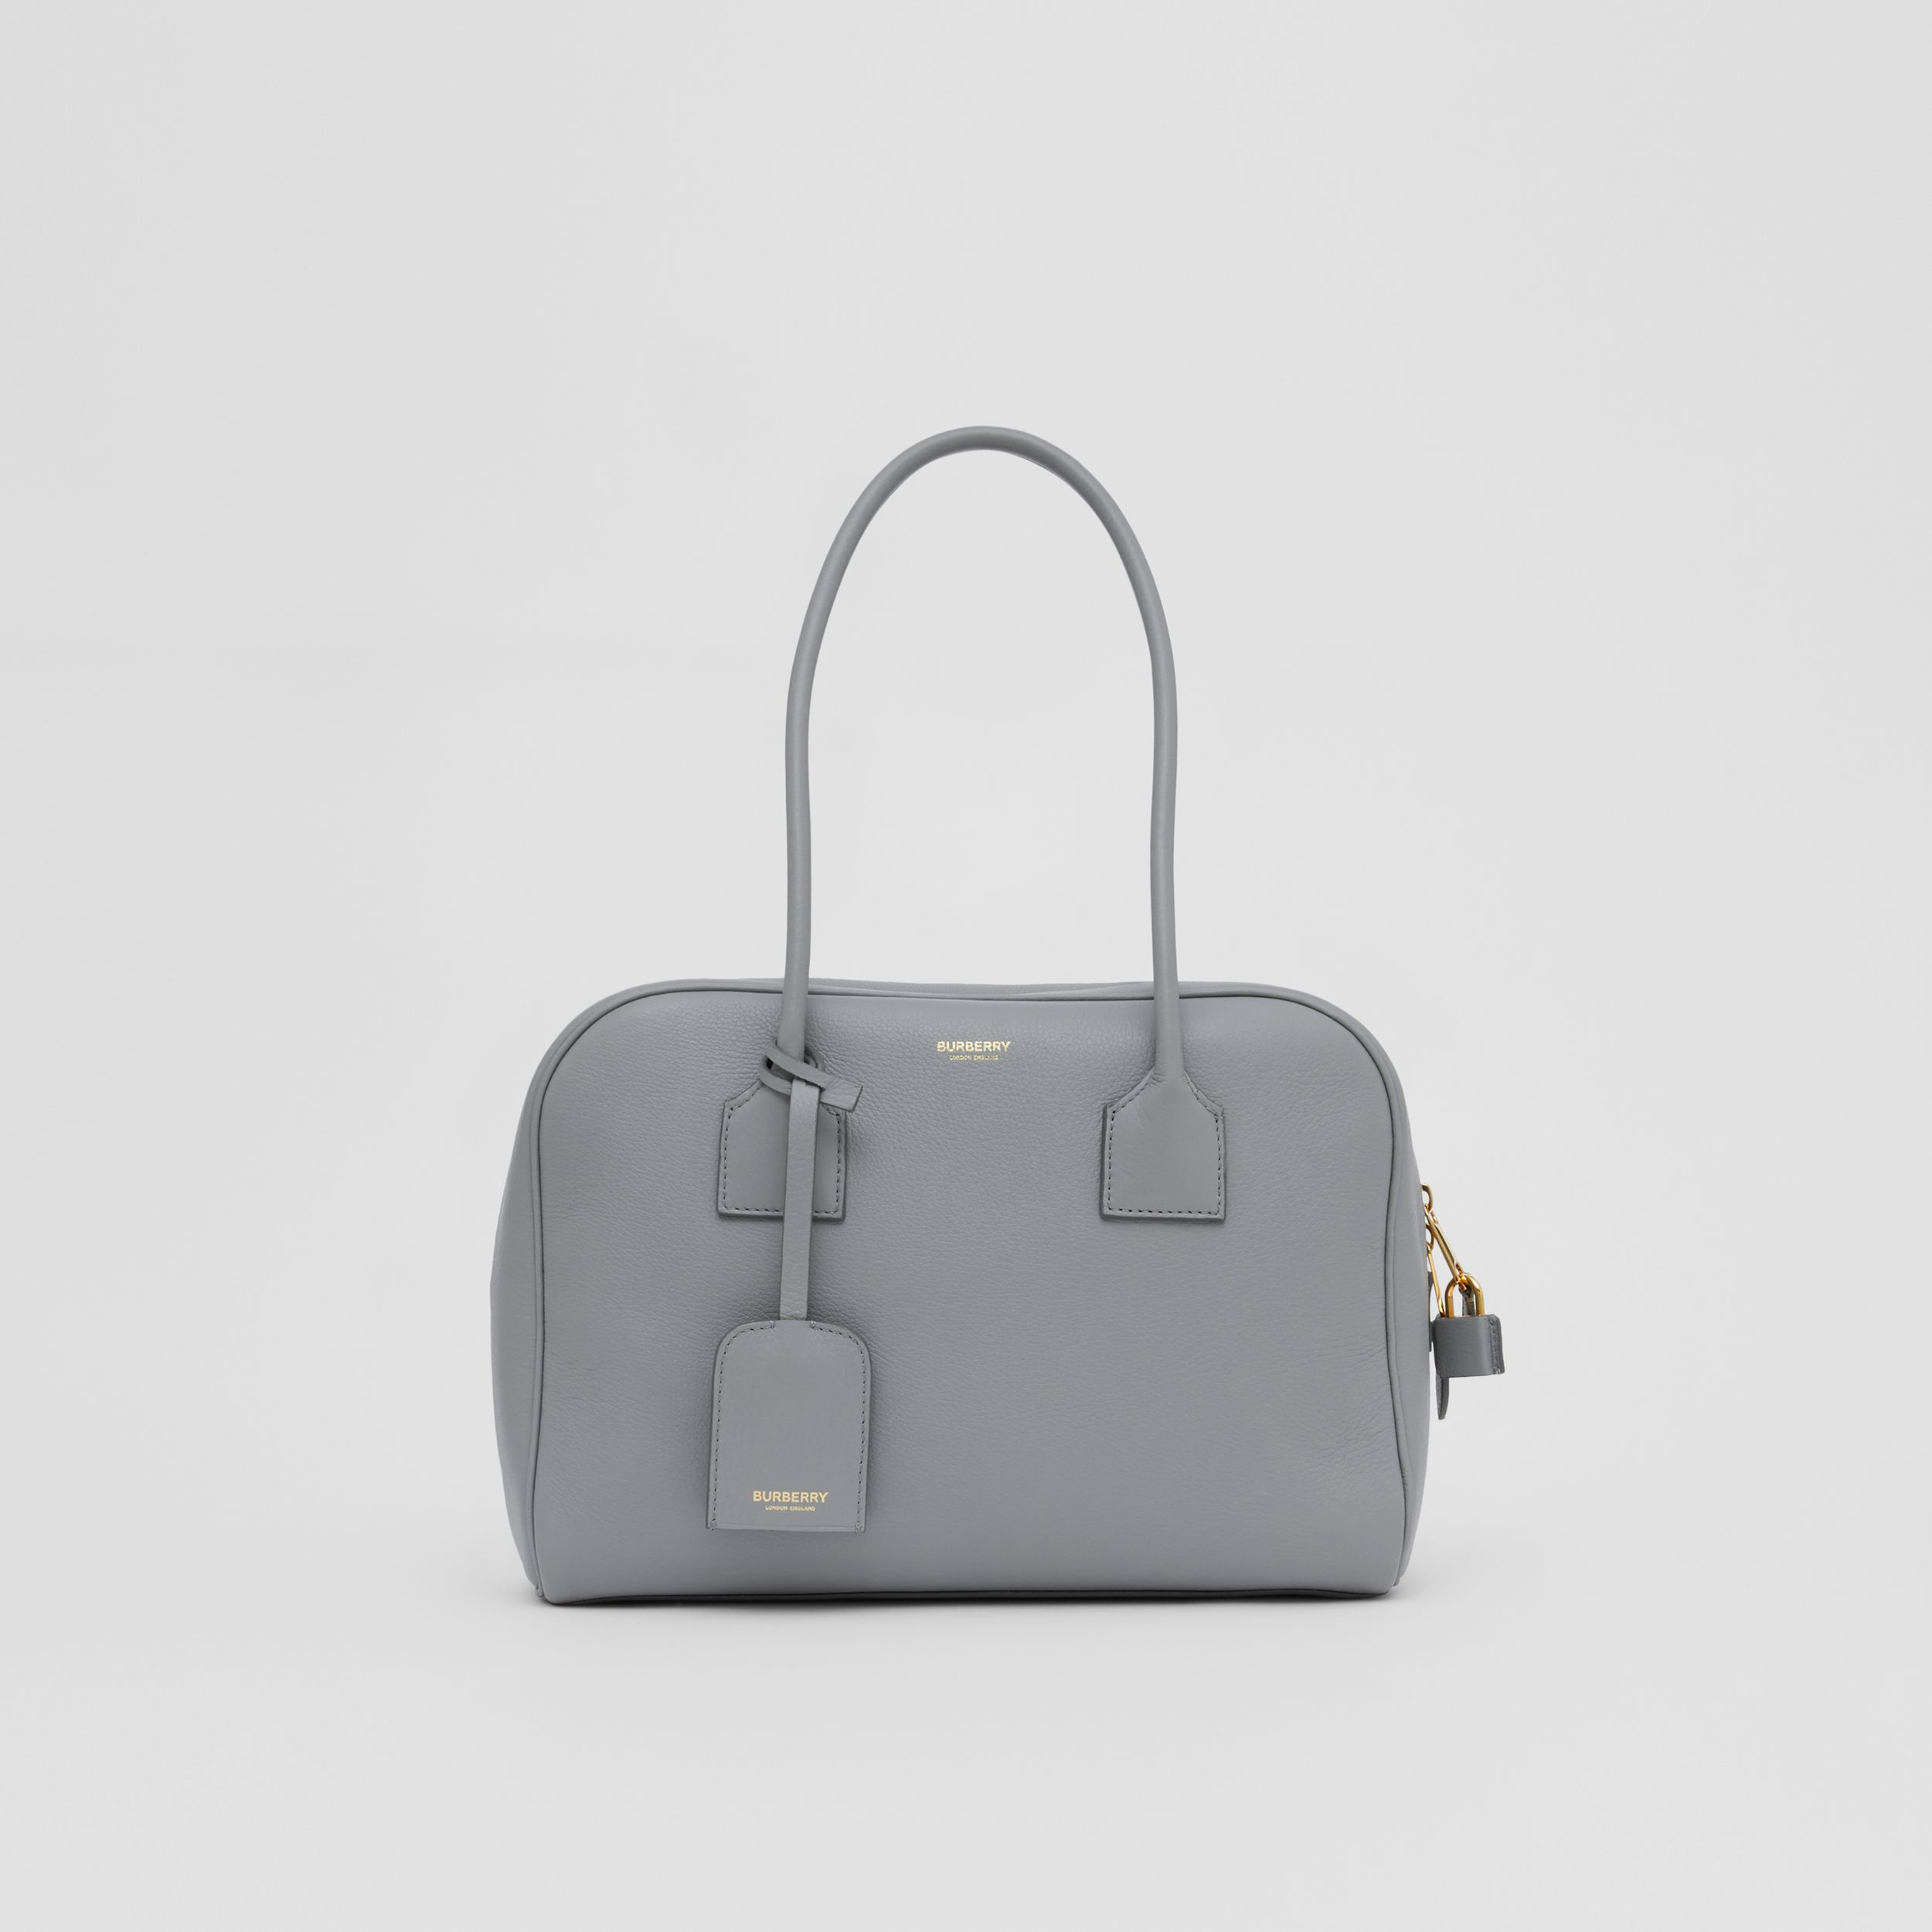 Medium Leather Half Cube Bag in Cloud Grey - Women | Burberry - 1